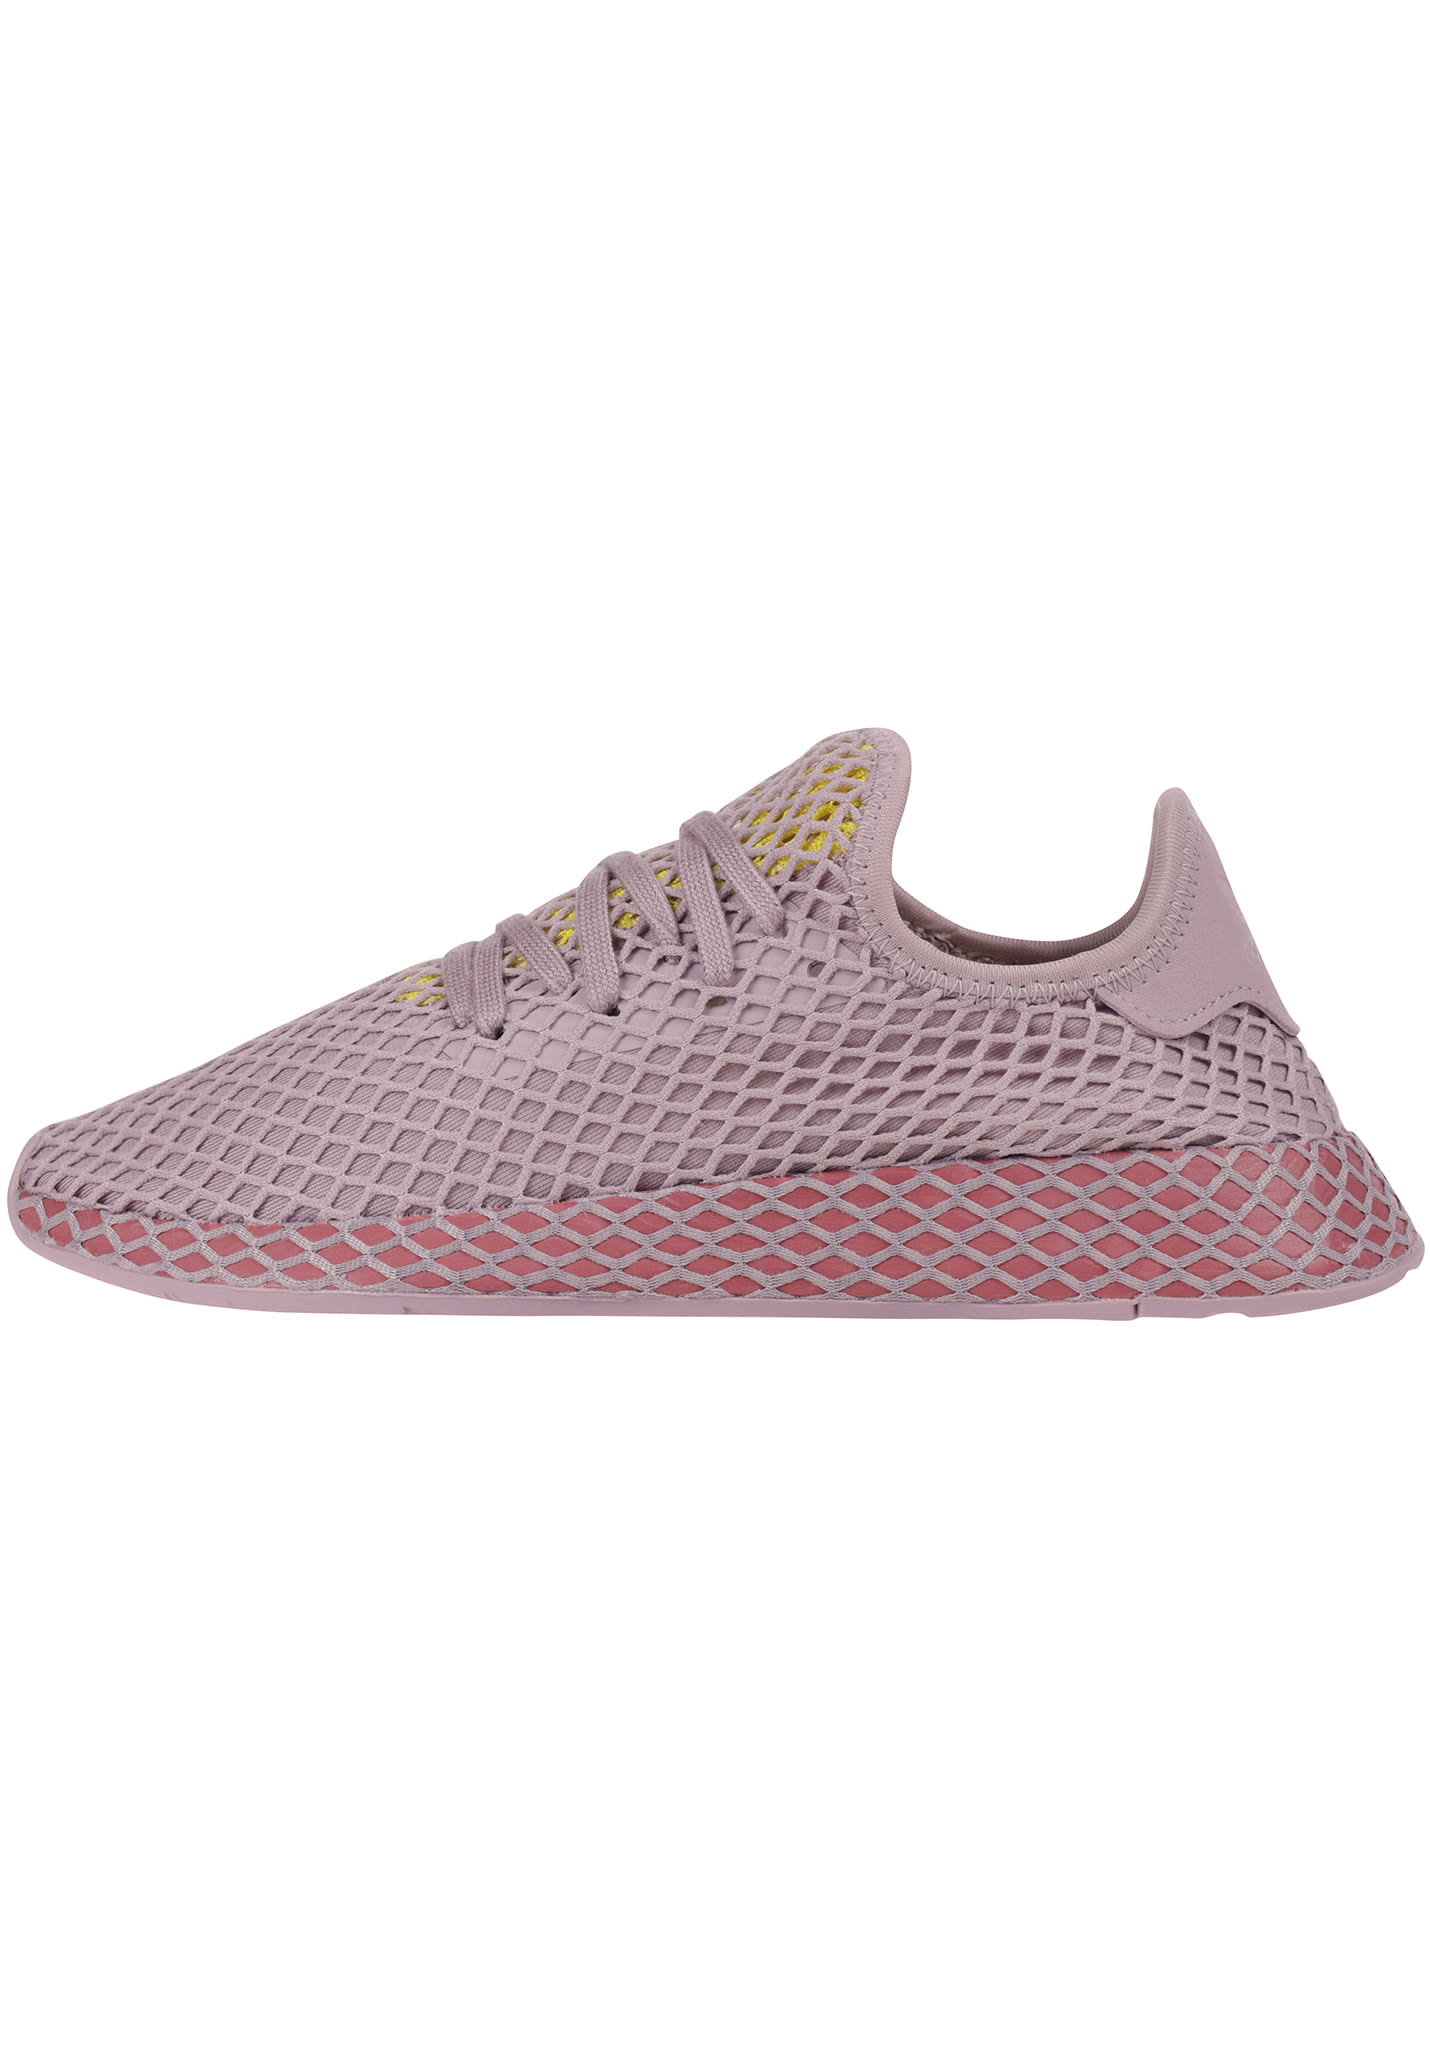 clearance prices amazing price huge sale ADIDAS ORIGINALS Deerupt Runner - Sneakers for Women - Purple